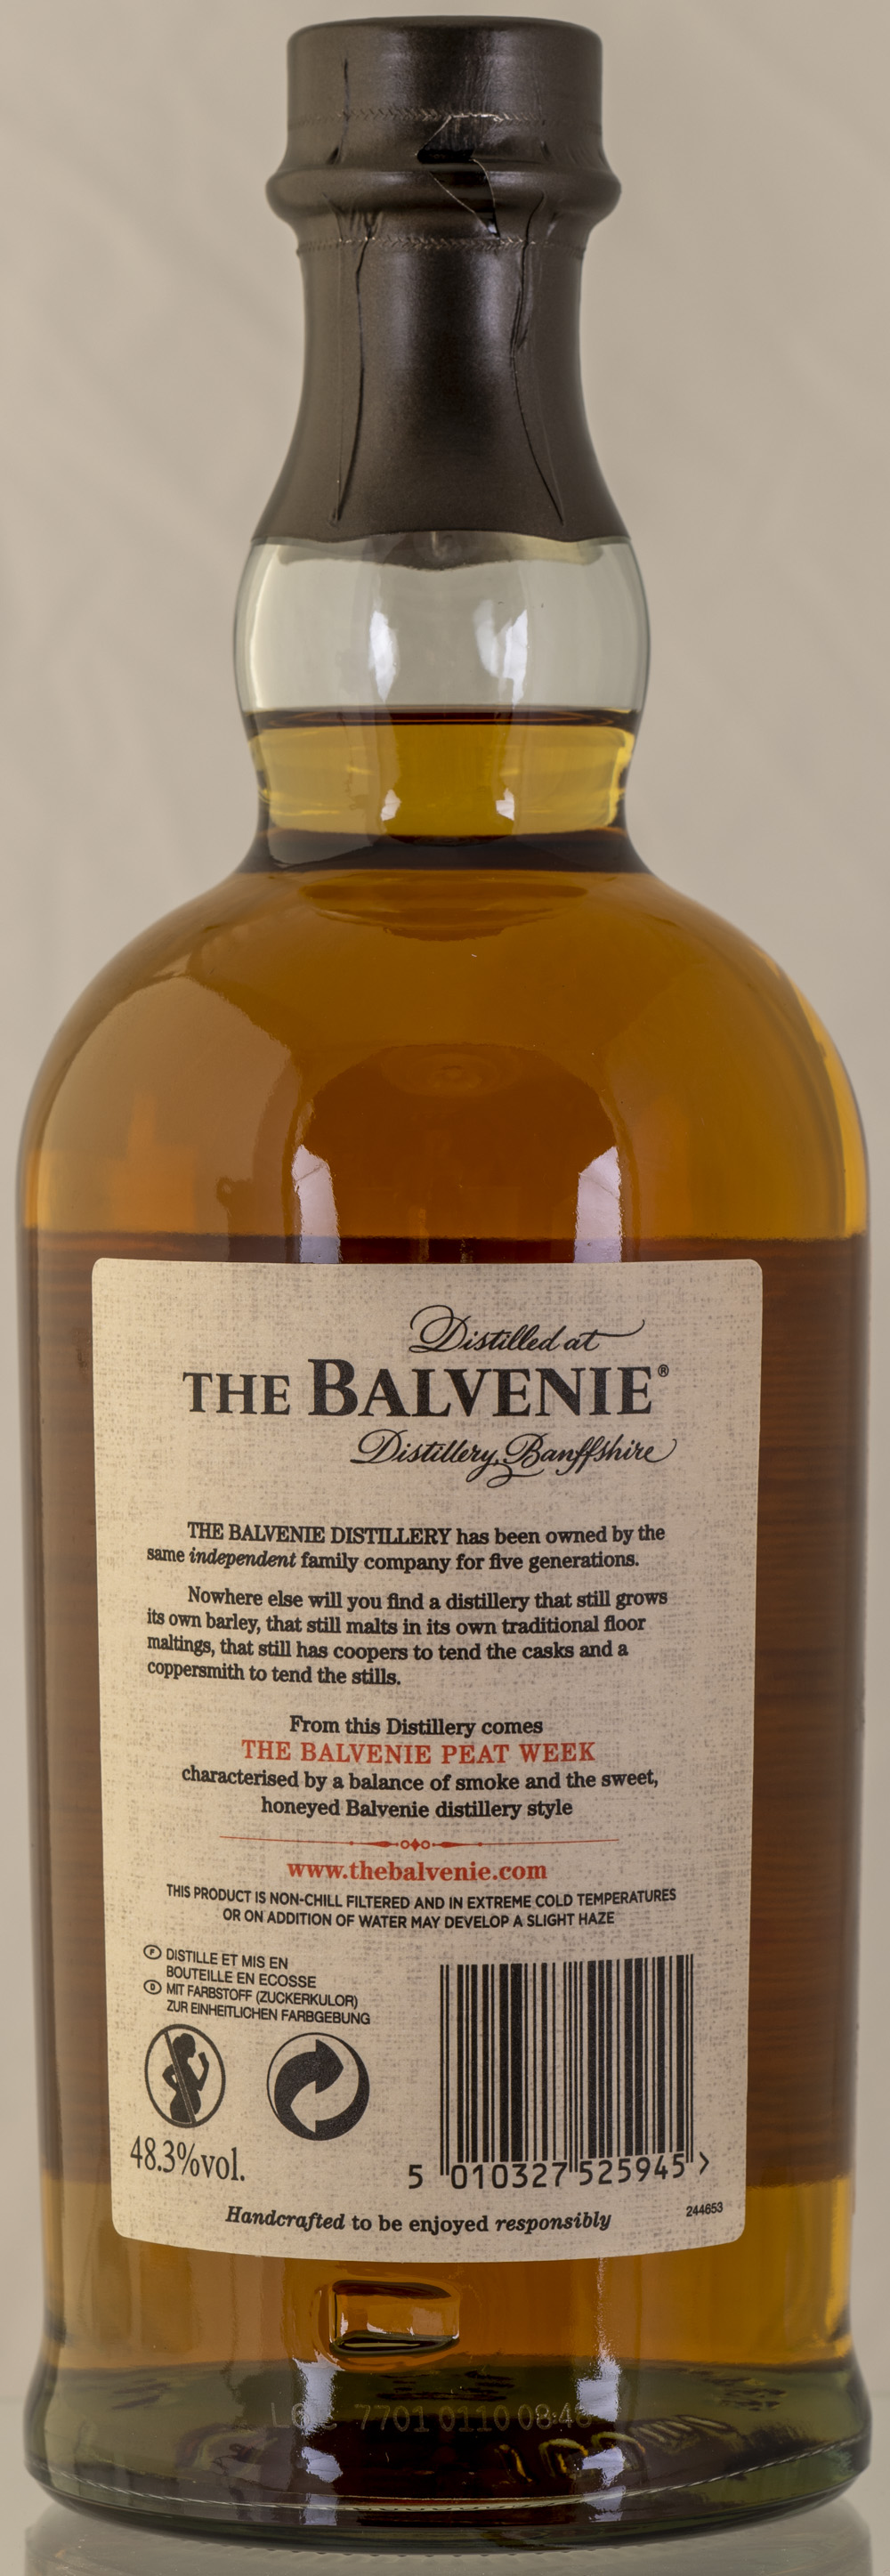 Billede: PHC_2285 - Balvenie Peat Week 2003 Vintage - bottle back.jpg